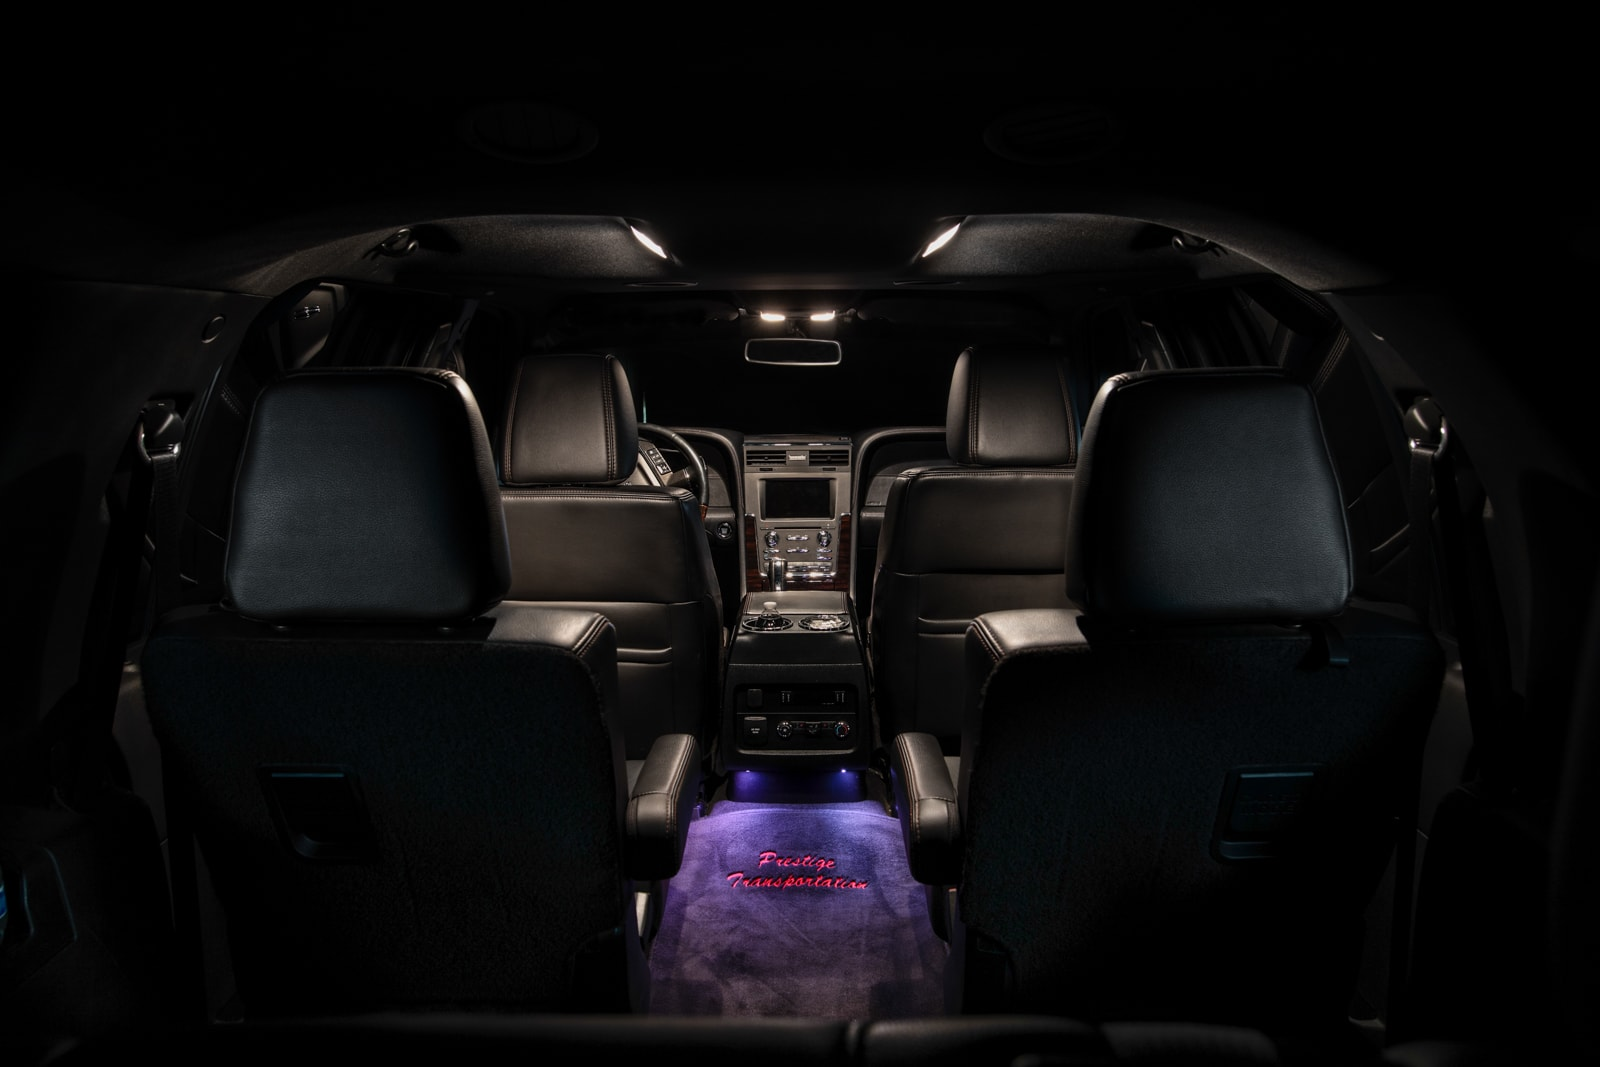 The luxury of the Lincoln Navigator front interior can't be beat and is a part of Prestige's limo rental fleet.